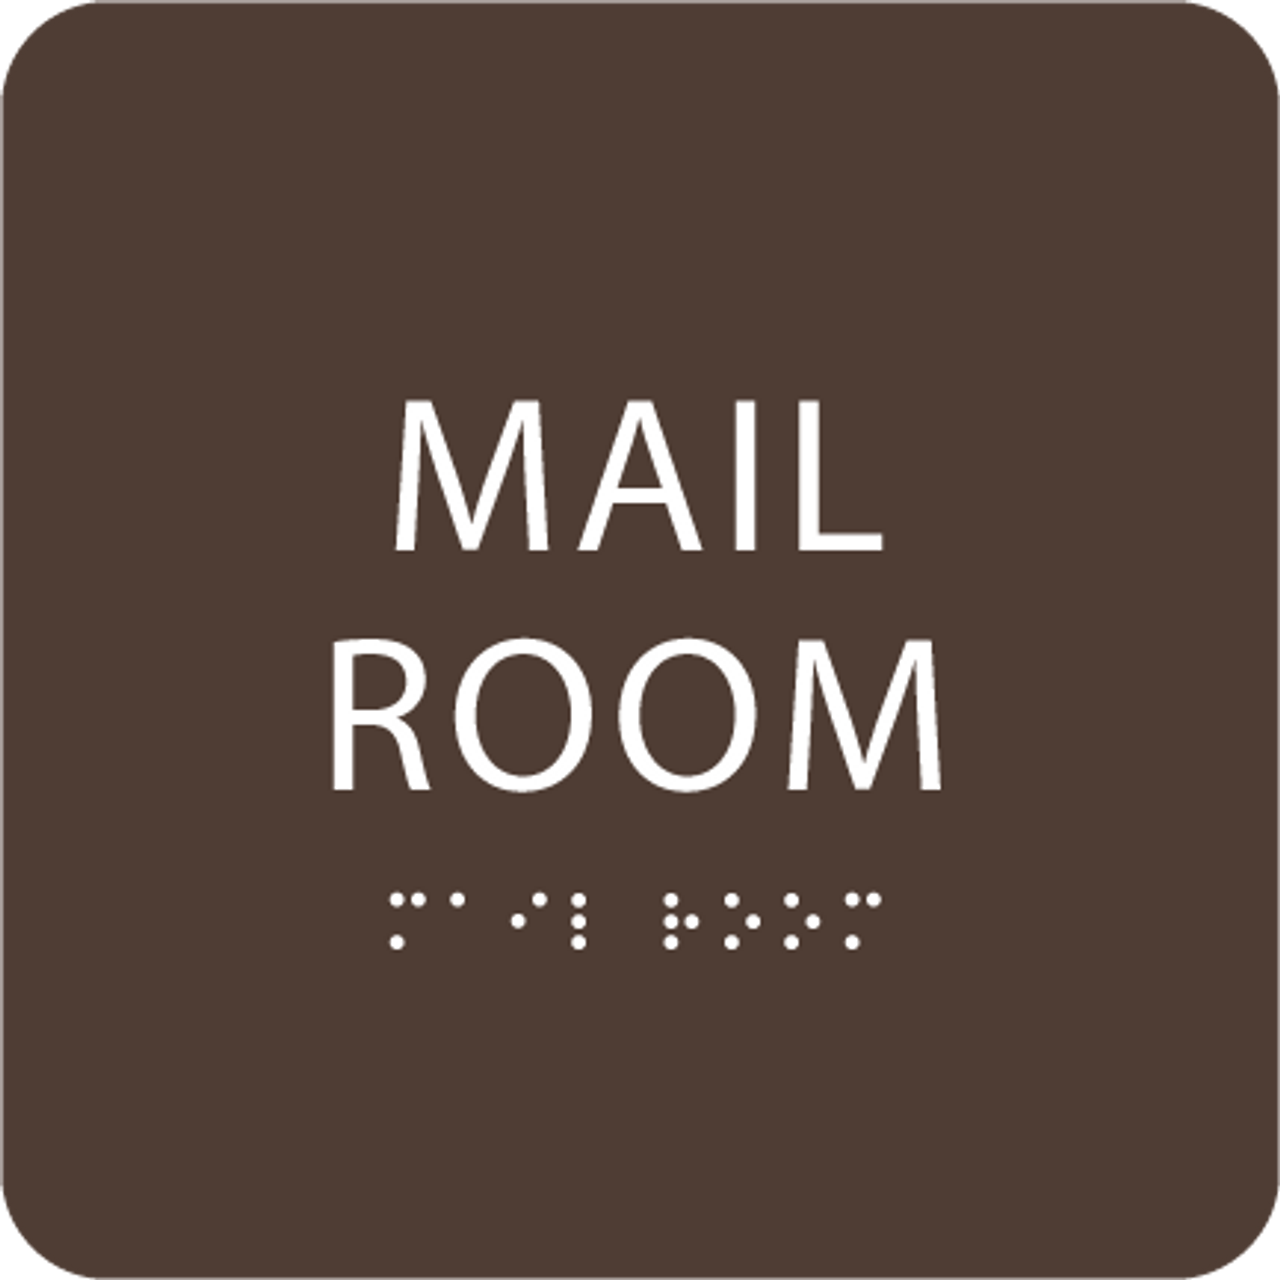 Dark Brown Mail Room ADA Sign